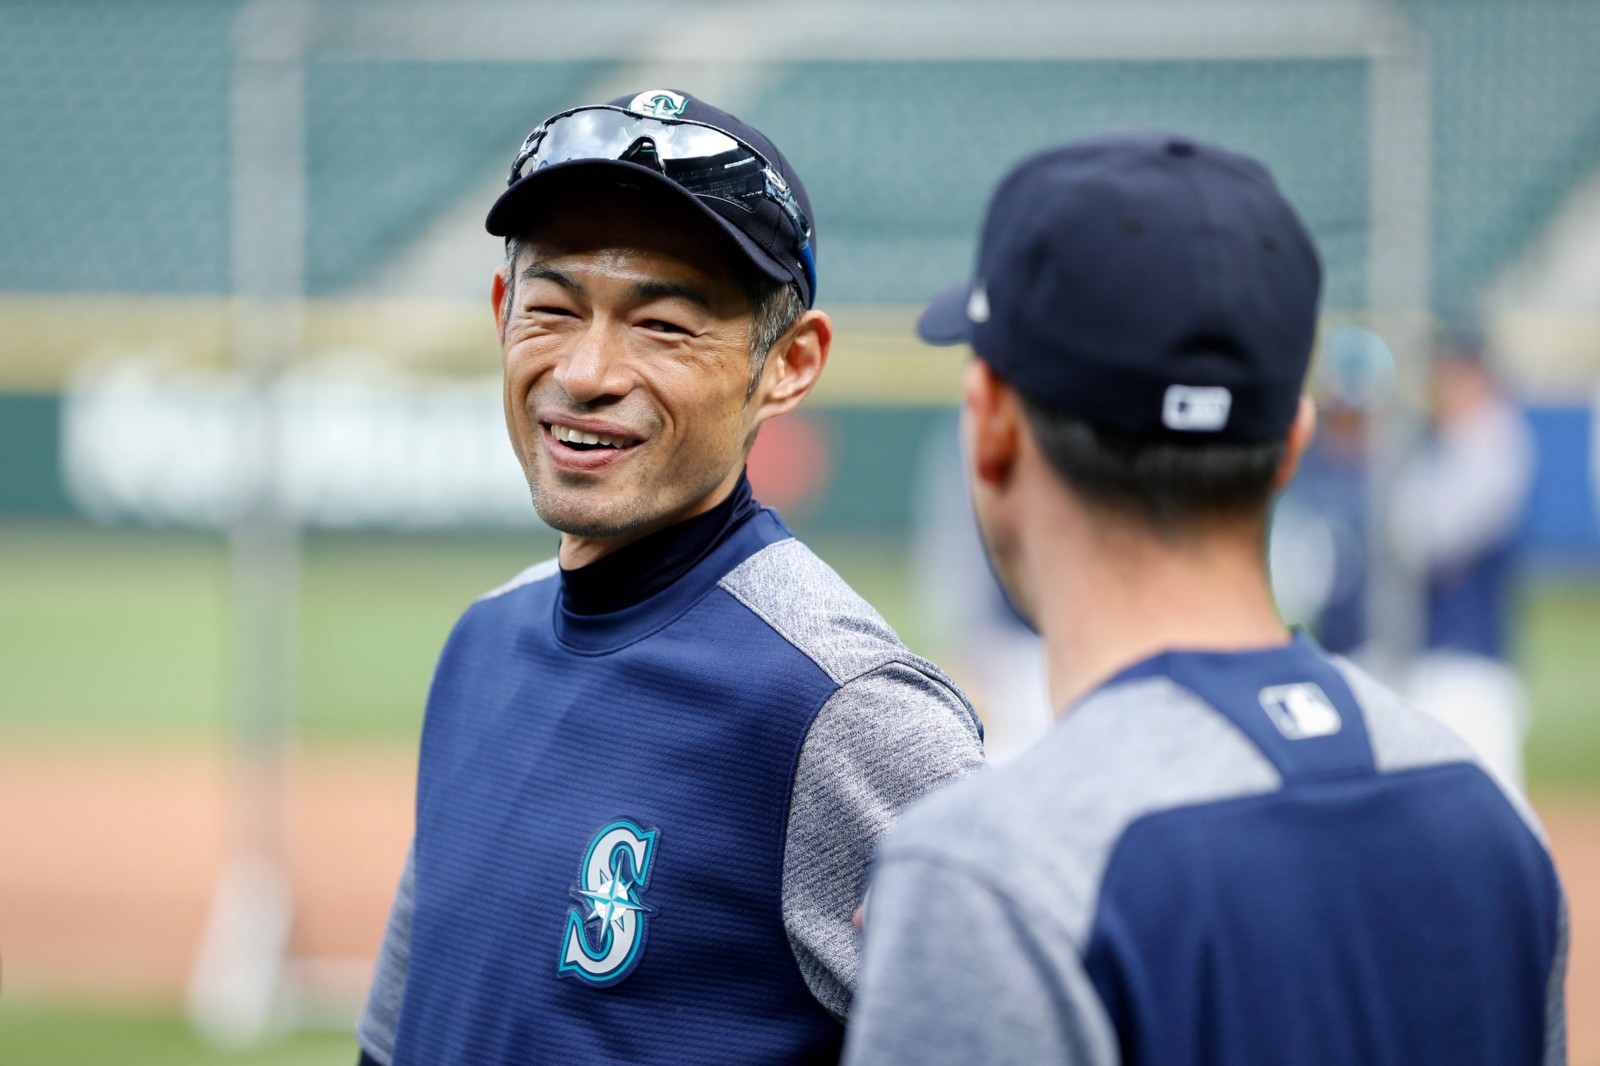 Ichiro Suzuki leaving diamond for front-office role with Mariners